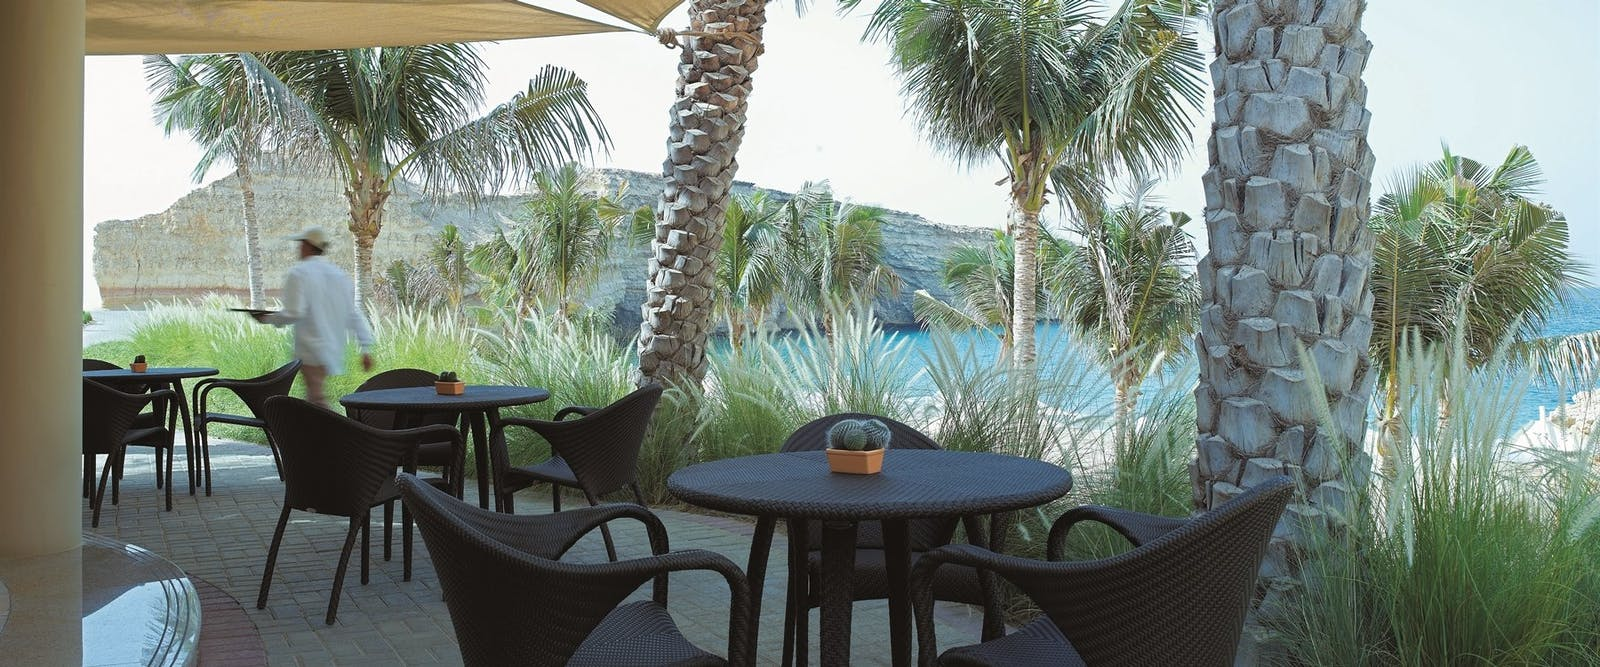 Maharra beach bar at Shangri-La's Al Husn Resort & Spa